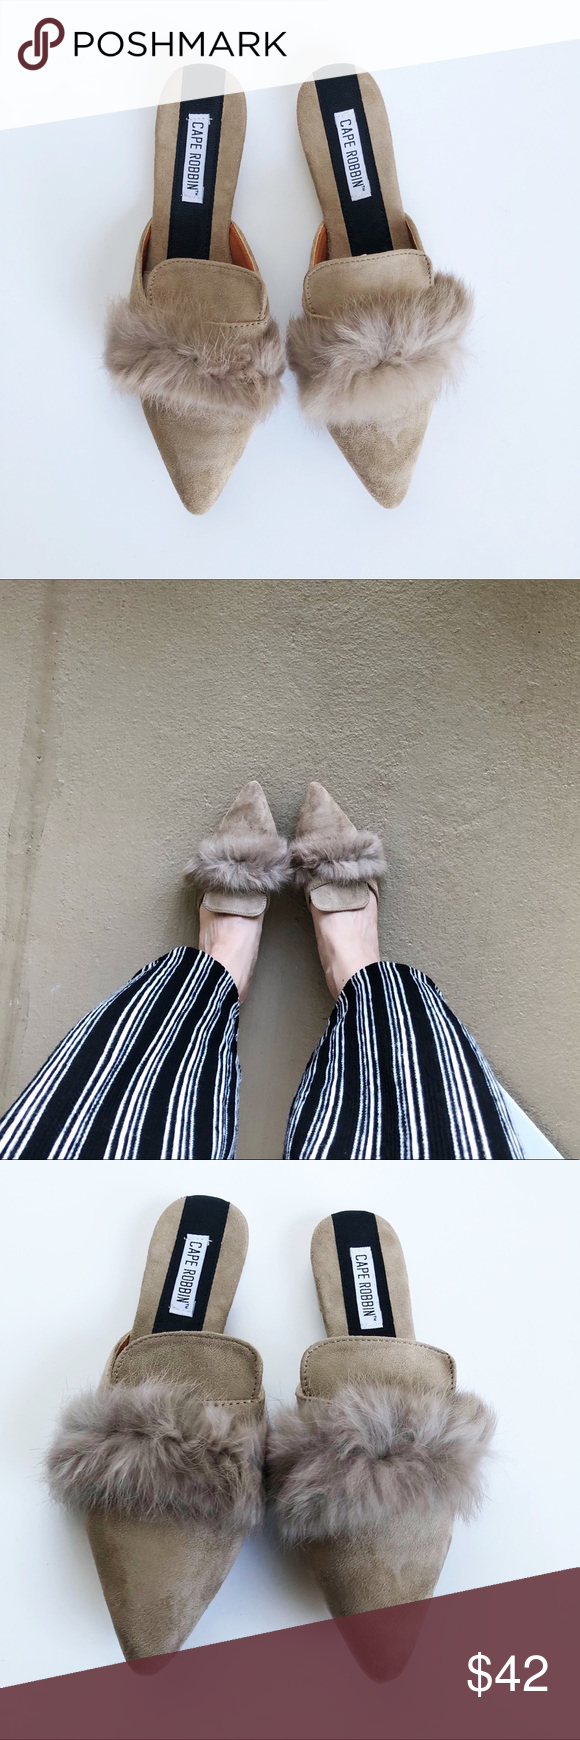 🆕Taupe pointed mule Pointed mule flat. Fur detail across toe. Faux suede material. Neutral taupe color. Perfect Fall staple. Sizing fits true. Cape Robbin Shoes Mules & Clogs